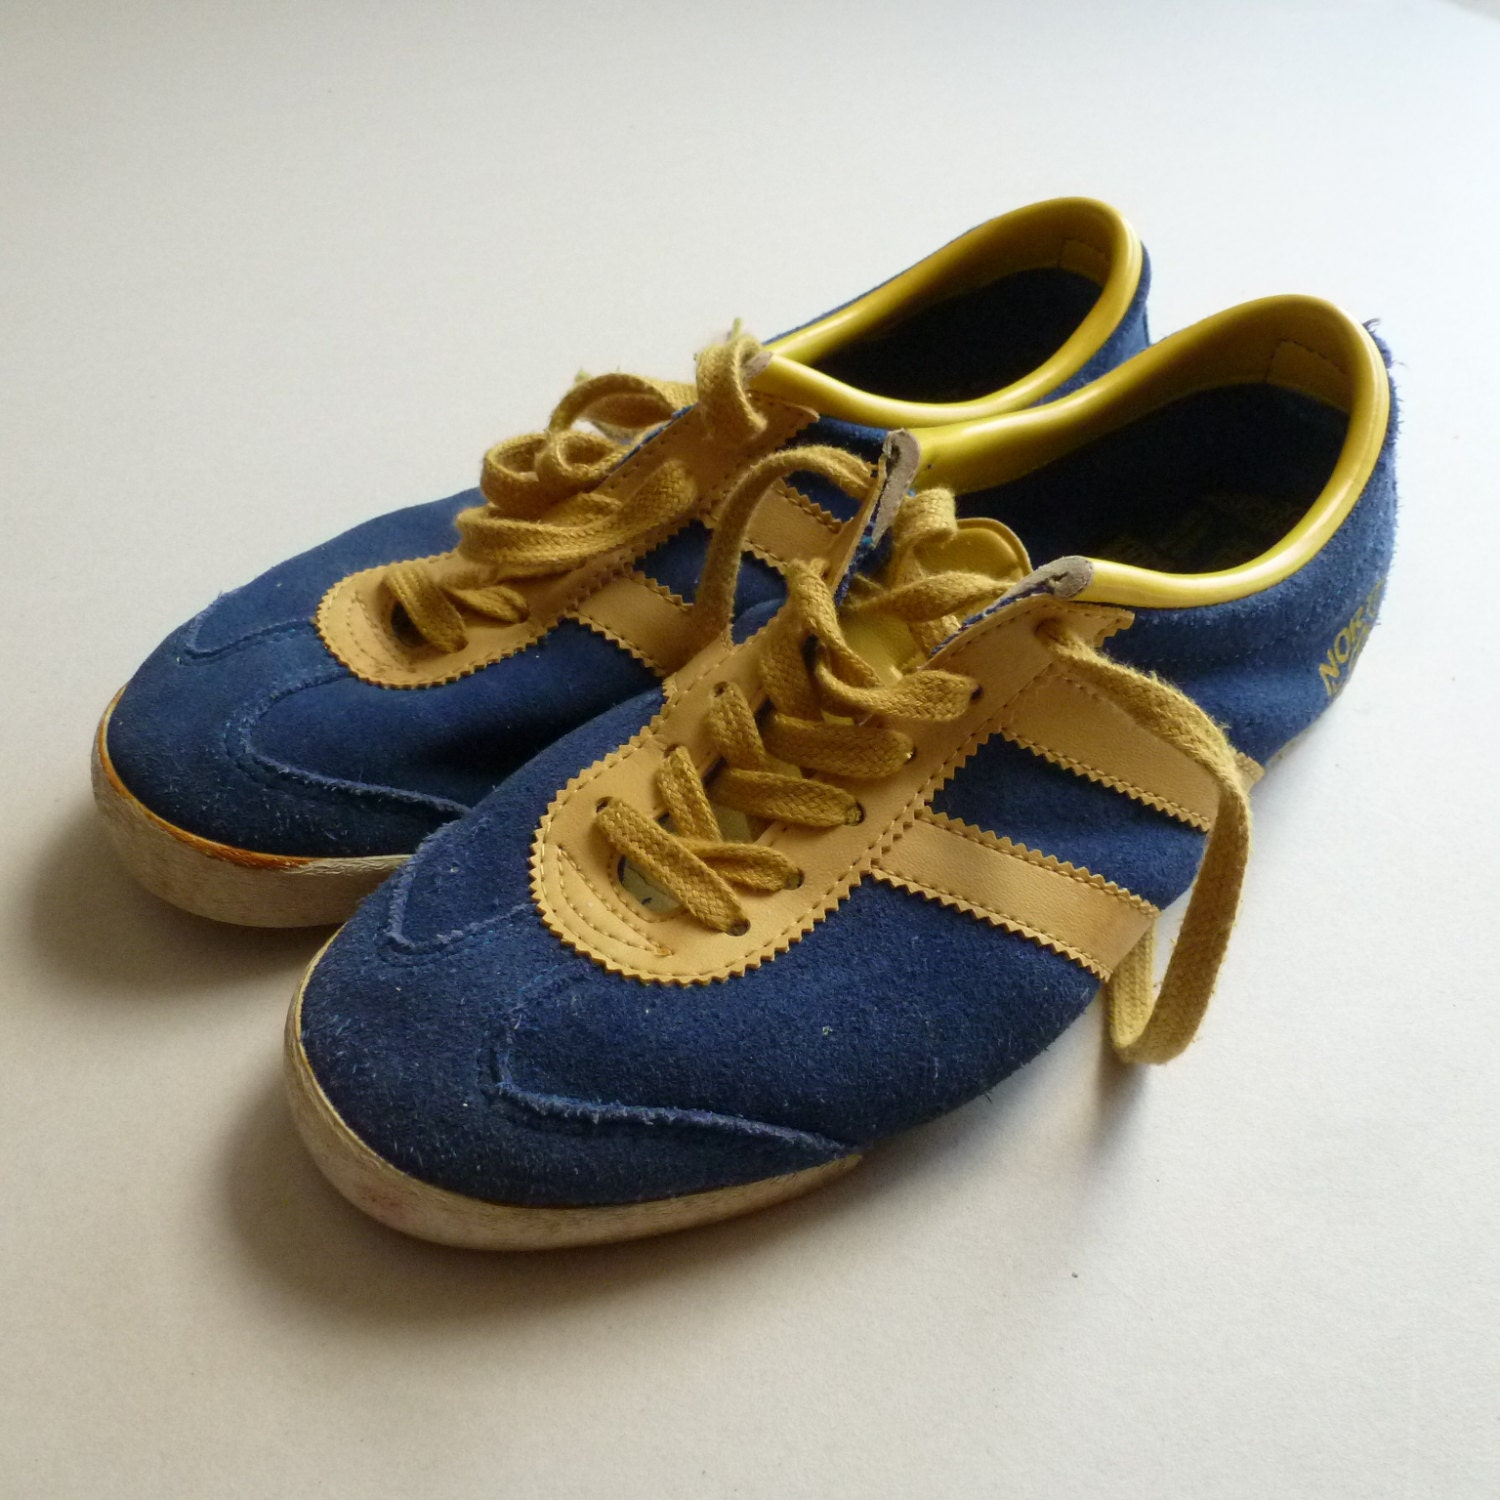 Vintage Yellow Shoes 17